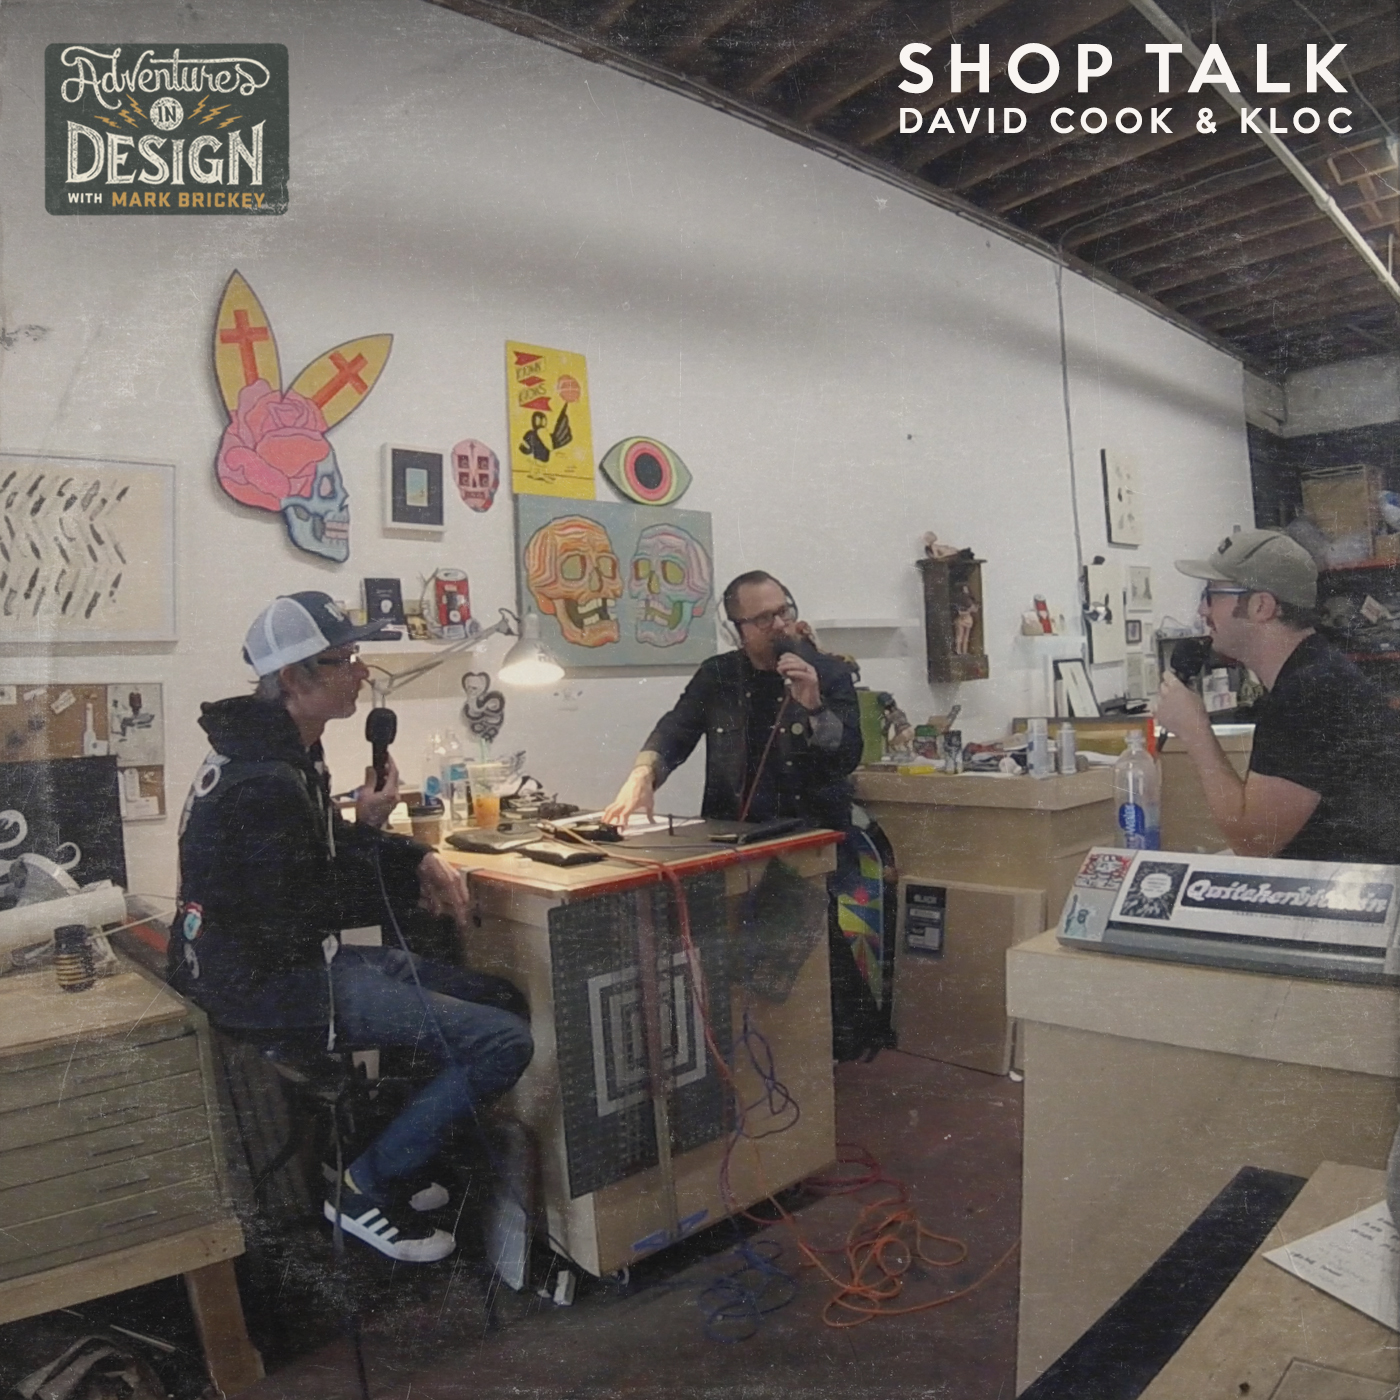 509 - Shop Talk with Dave Cook and Kloc